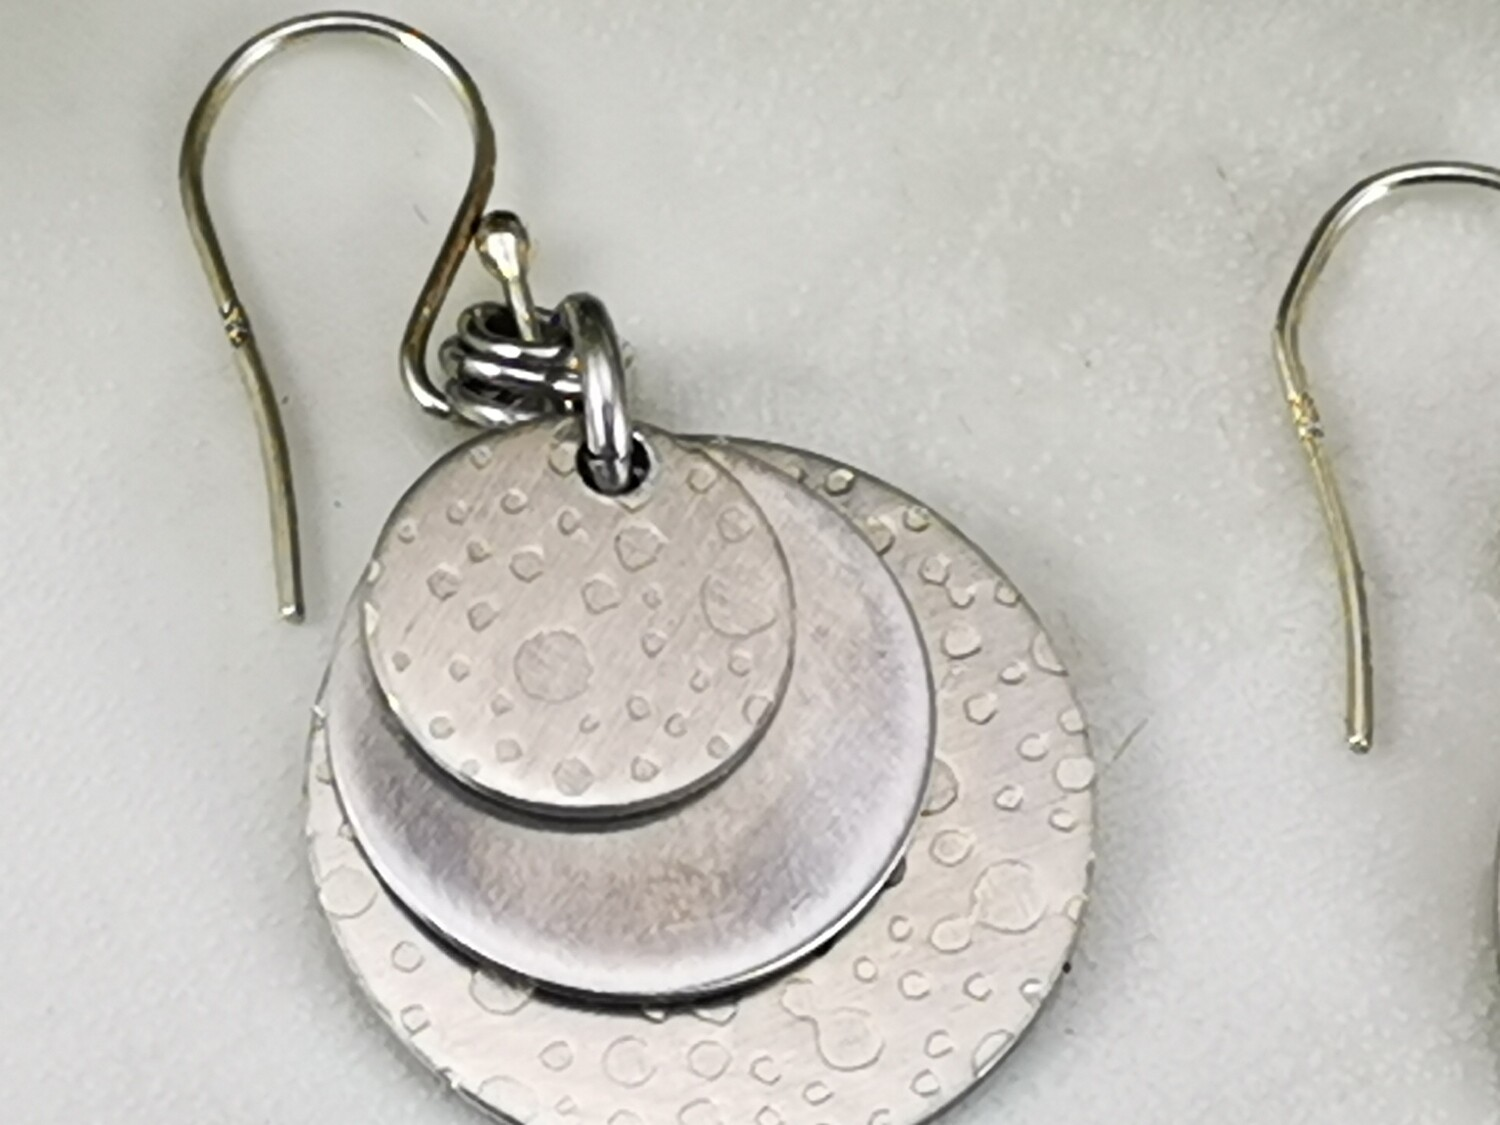 Aluminum, Circle, Round Earrings with a Bubble Patterned Texture, Lightweight, Gifts for Her